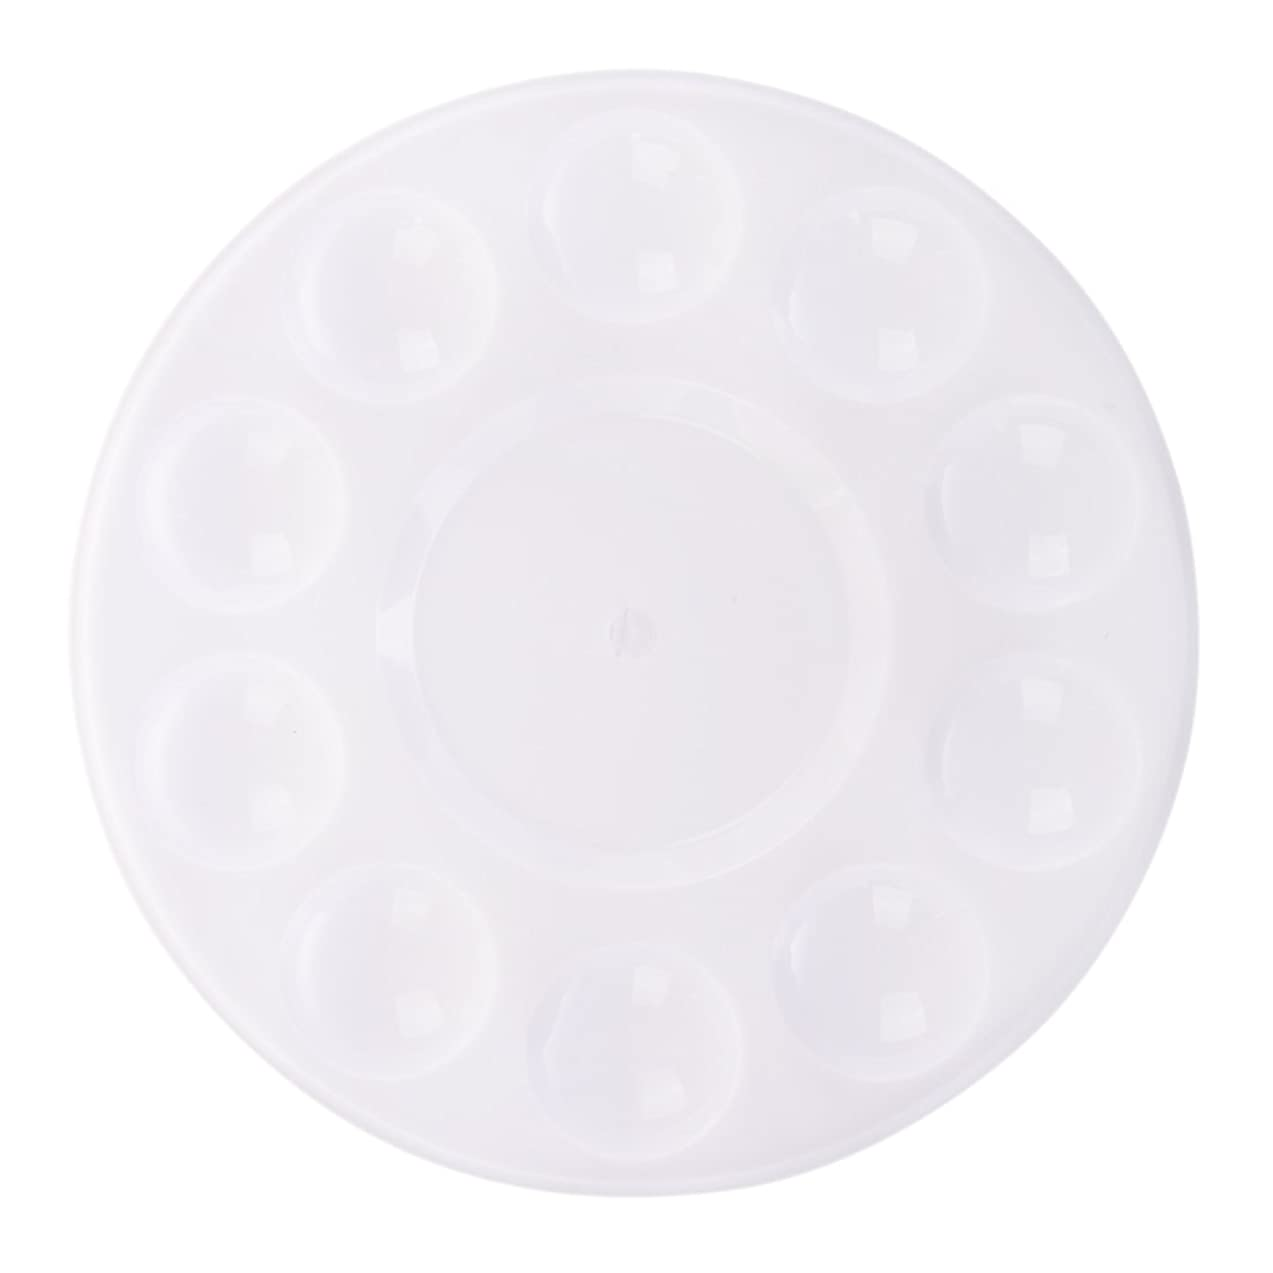 Chris.W 12Pcs Round Plastic Paint Tray Palettes for Acrylic Oil Watercolor DIY Craft Professional Art Painting Art Party Theme Supplies(White)